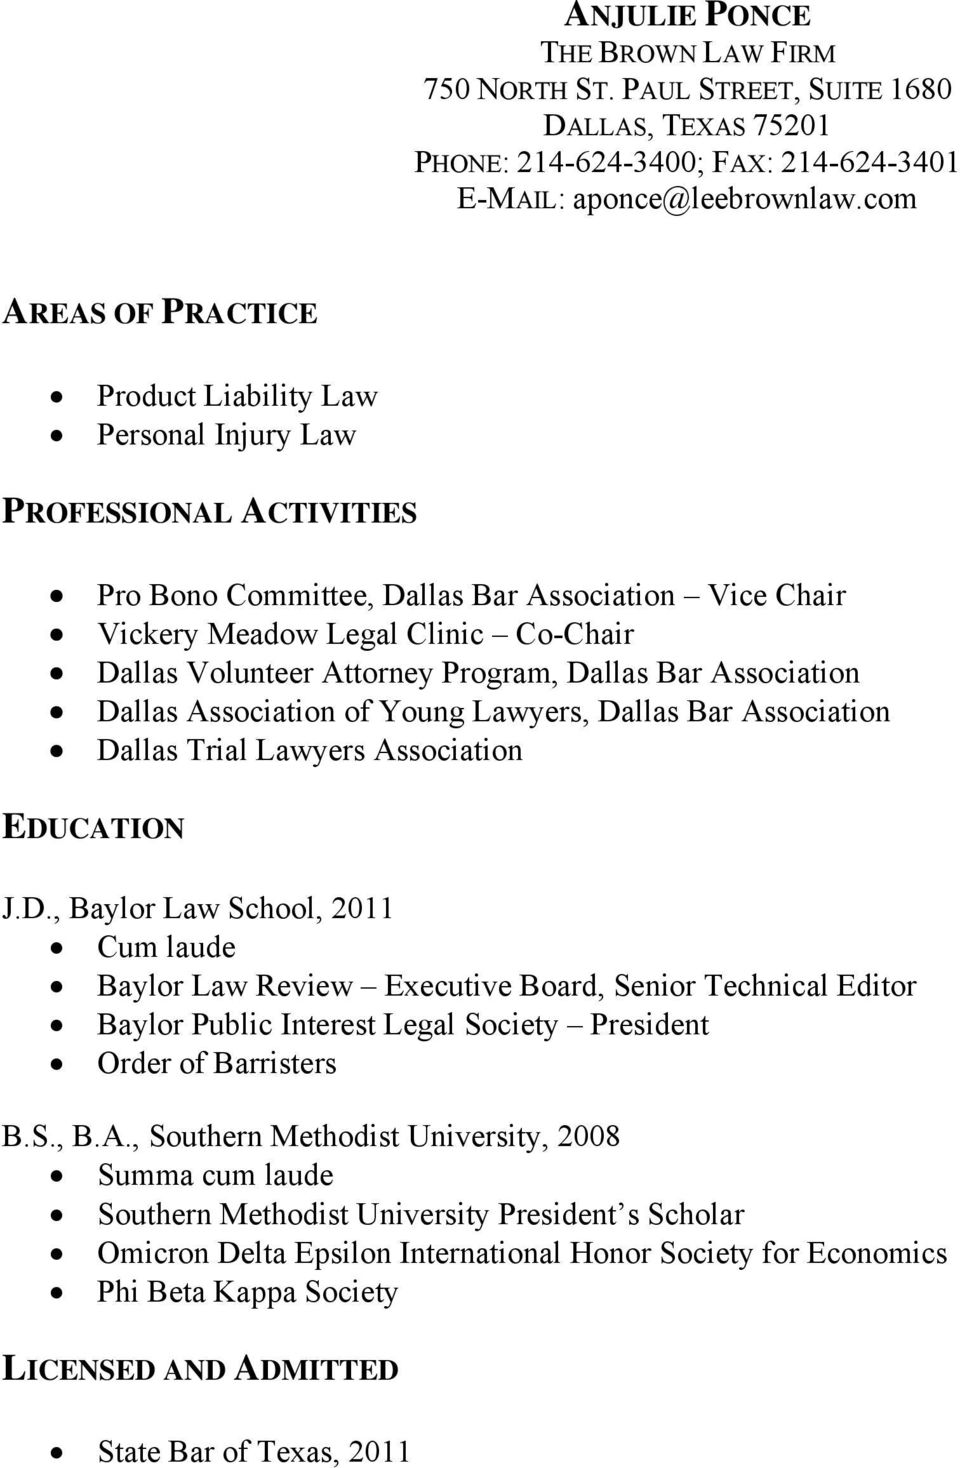 Attorney Program, Dallas Bar Association Dallas Association of Young Lawyers, Dallas Bar Association Dallas Trial Lawyers Association EDUCATION J.D., Baylor Law School, 2011 Cum laude Baylor Law Review Executive Board, Senior Technical Editor Baylor Public Interest Legal Society President Order of Barristers B.